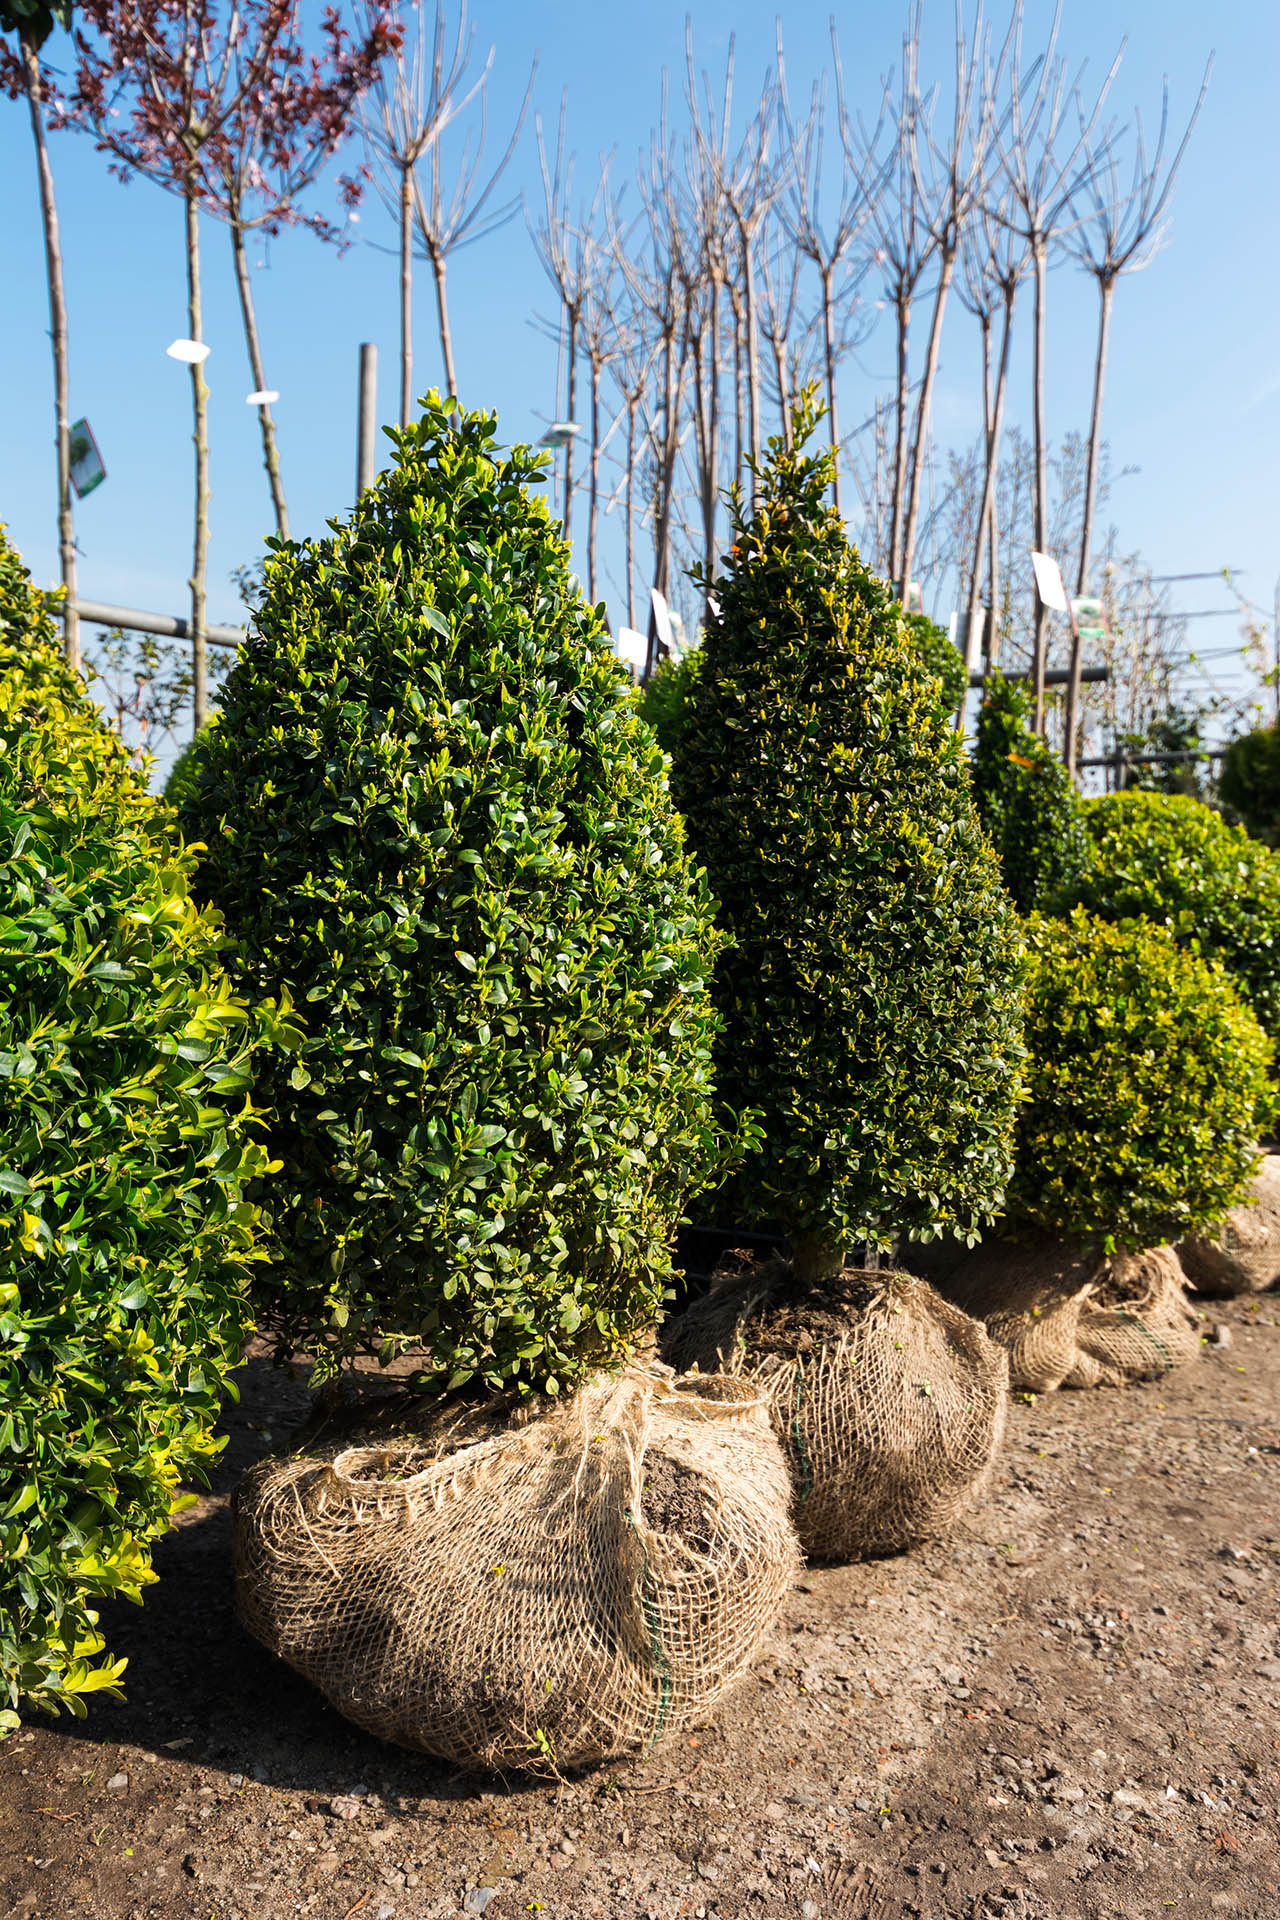 Young buxus trees in a garden center